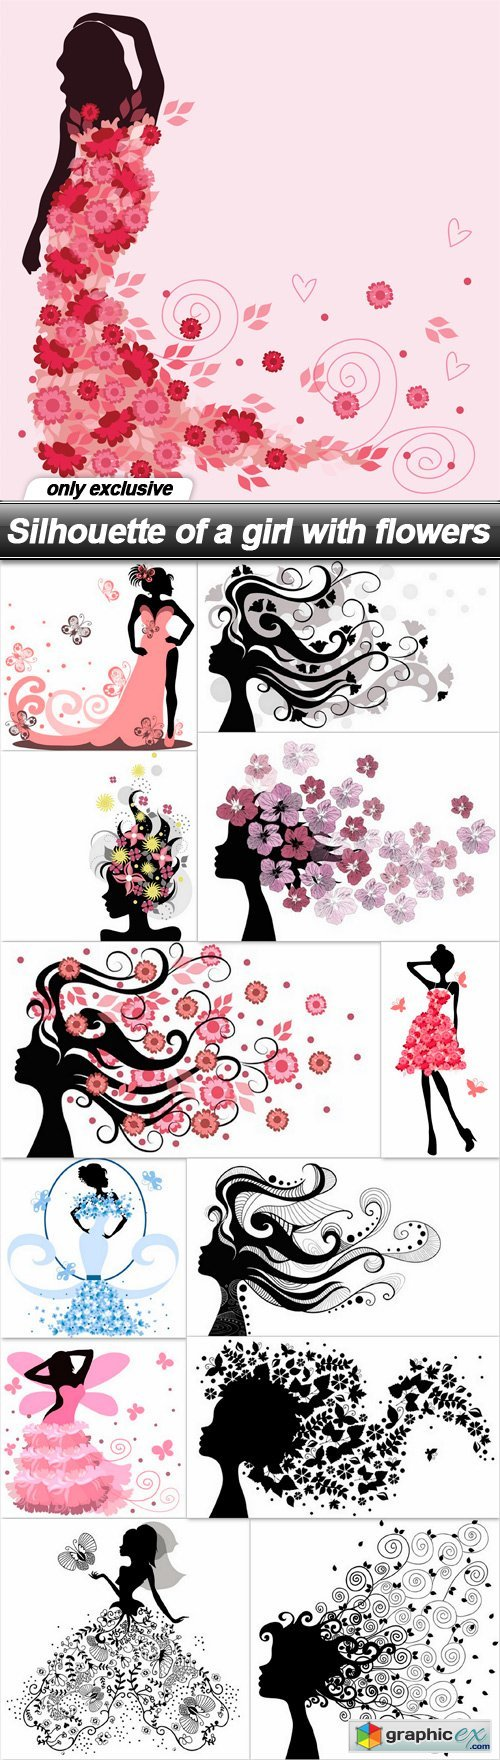 Silhouette of a girl with flowers - 13 UHQ JPEG